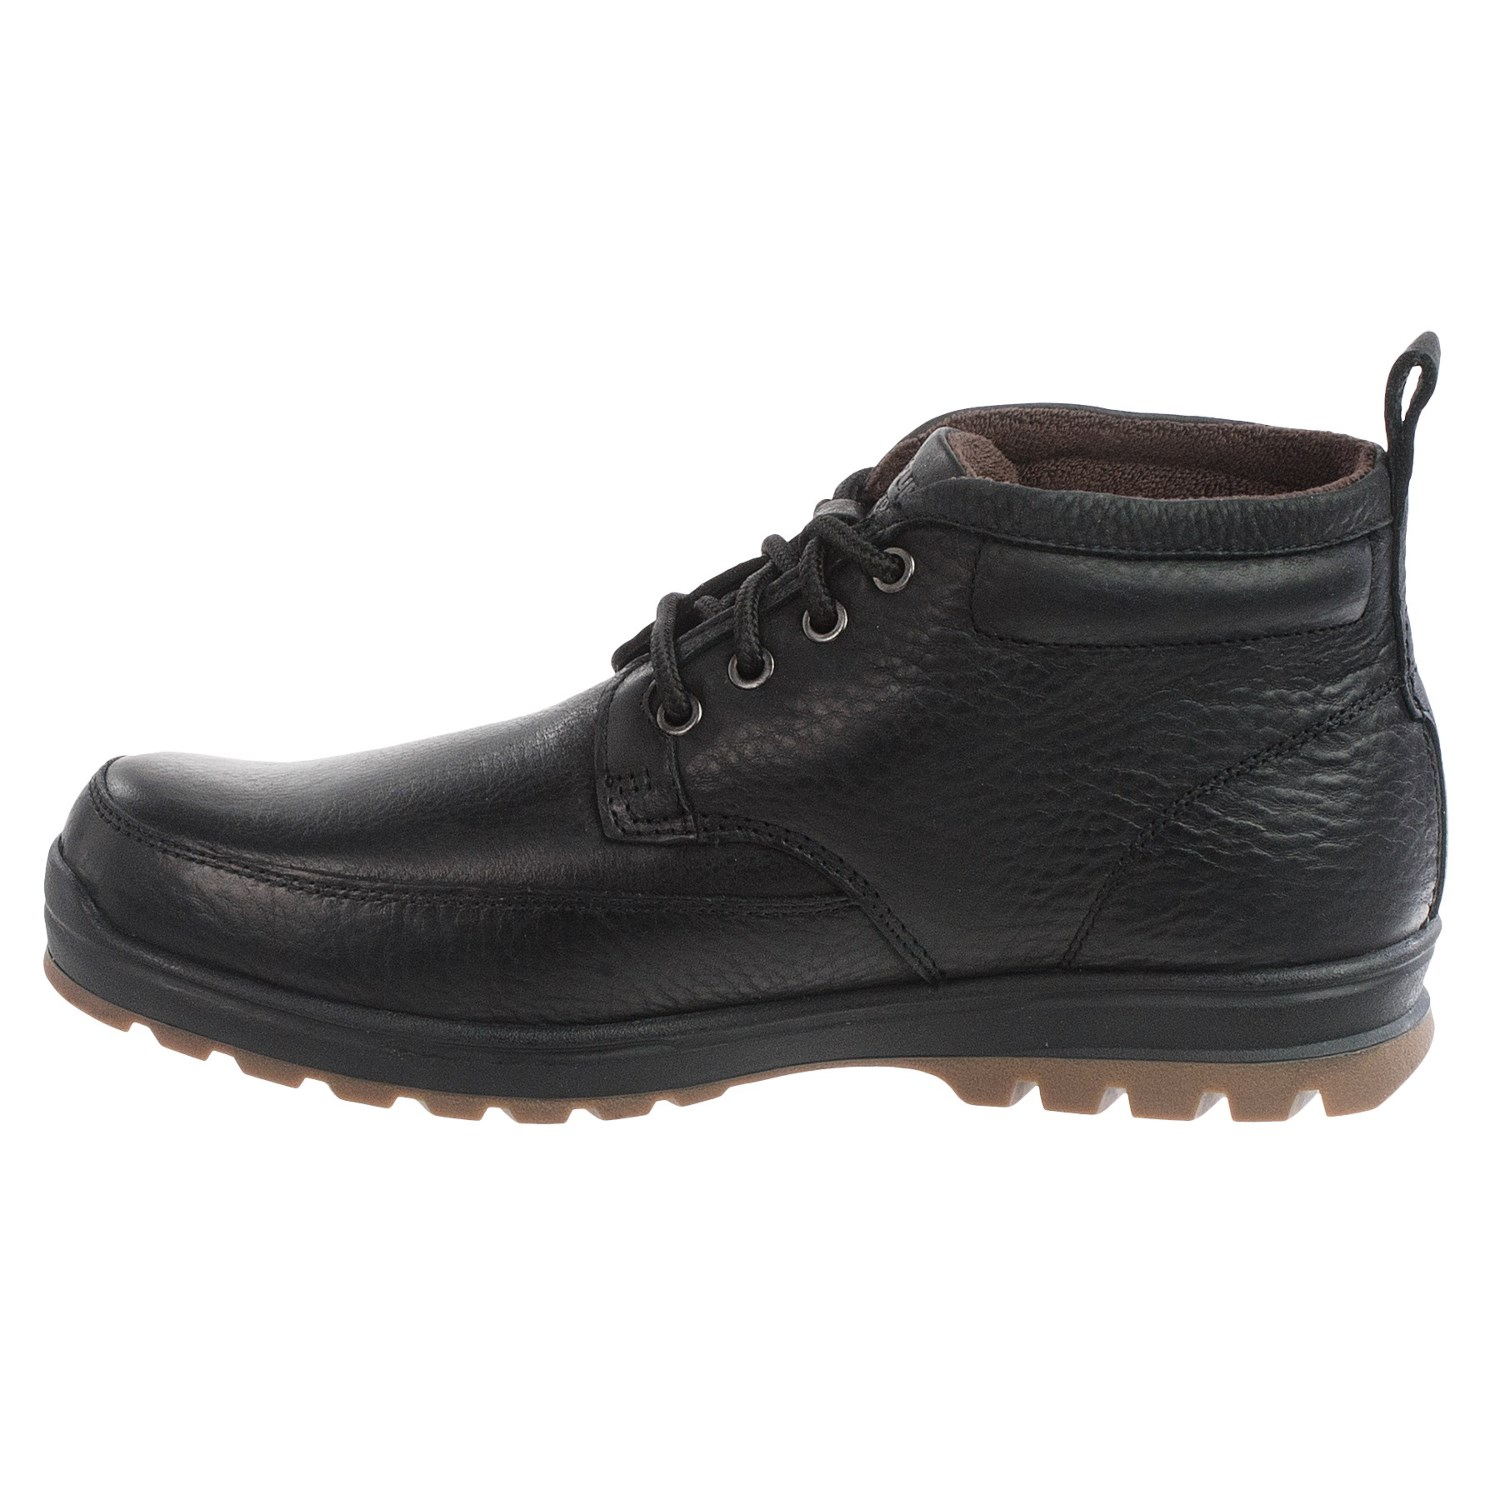 hush-puppies-dutch-abbott-leather-chukka-boots-waterproof-insulated-for-men~a~129yu_5~1500.1.jpg